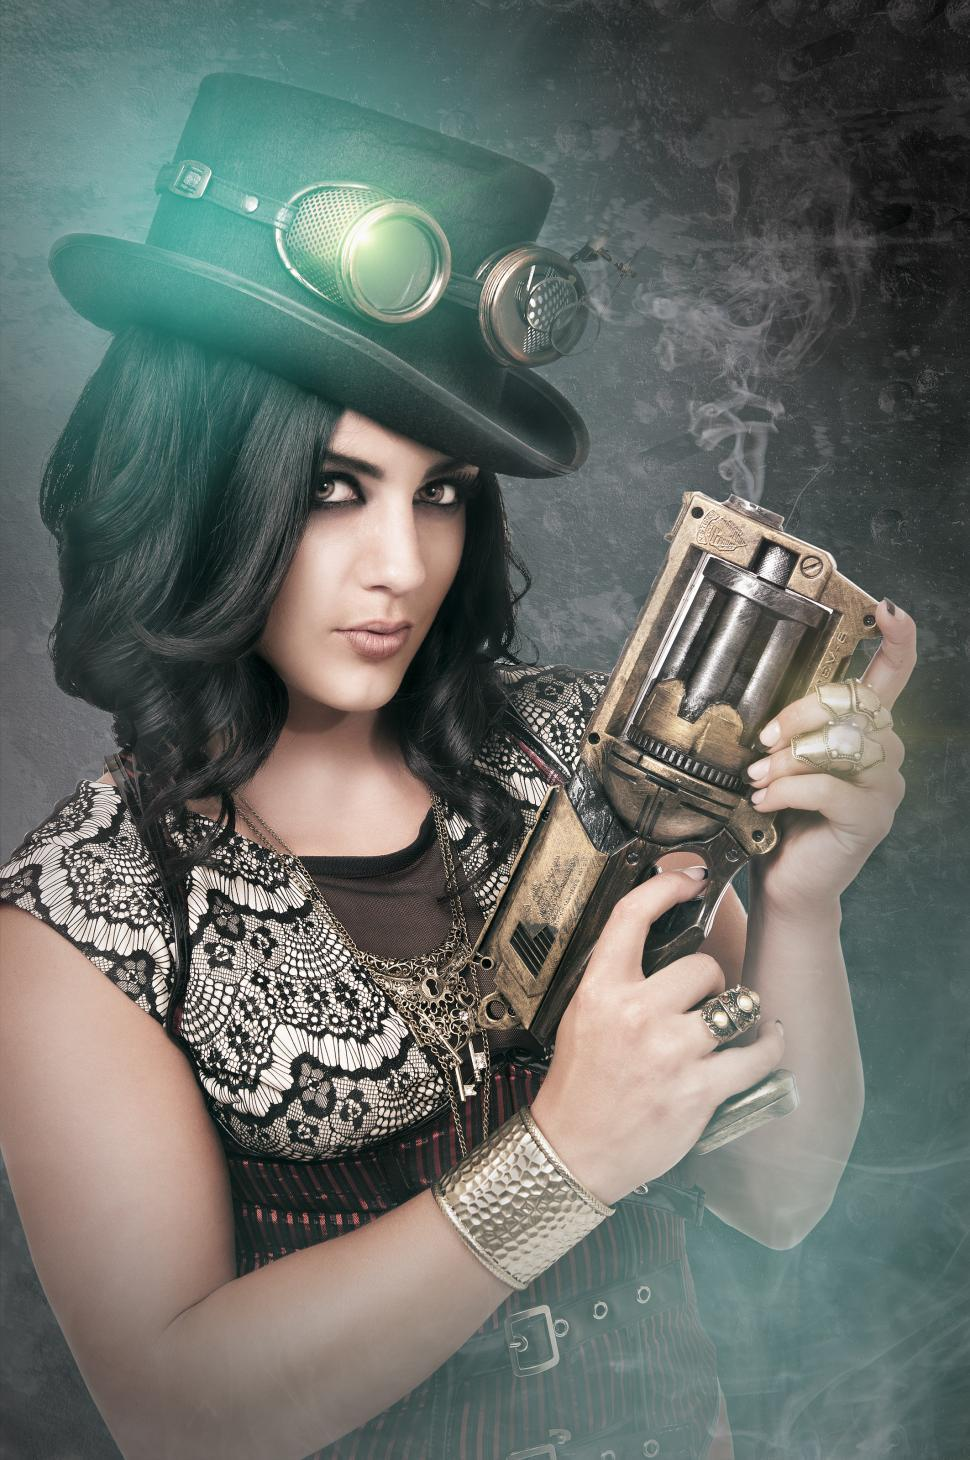 Download Free Stock HD Photo of Steampunk girl with gun Online